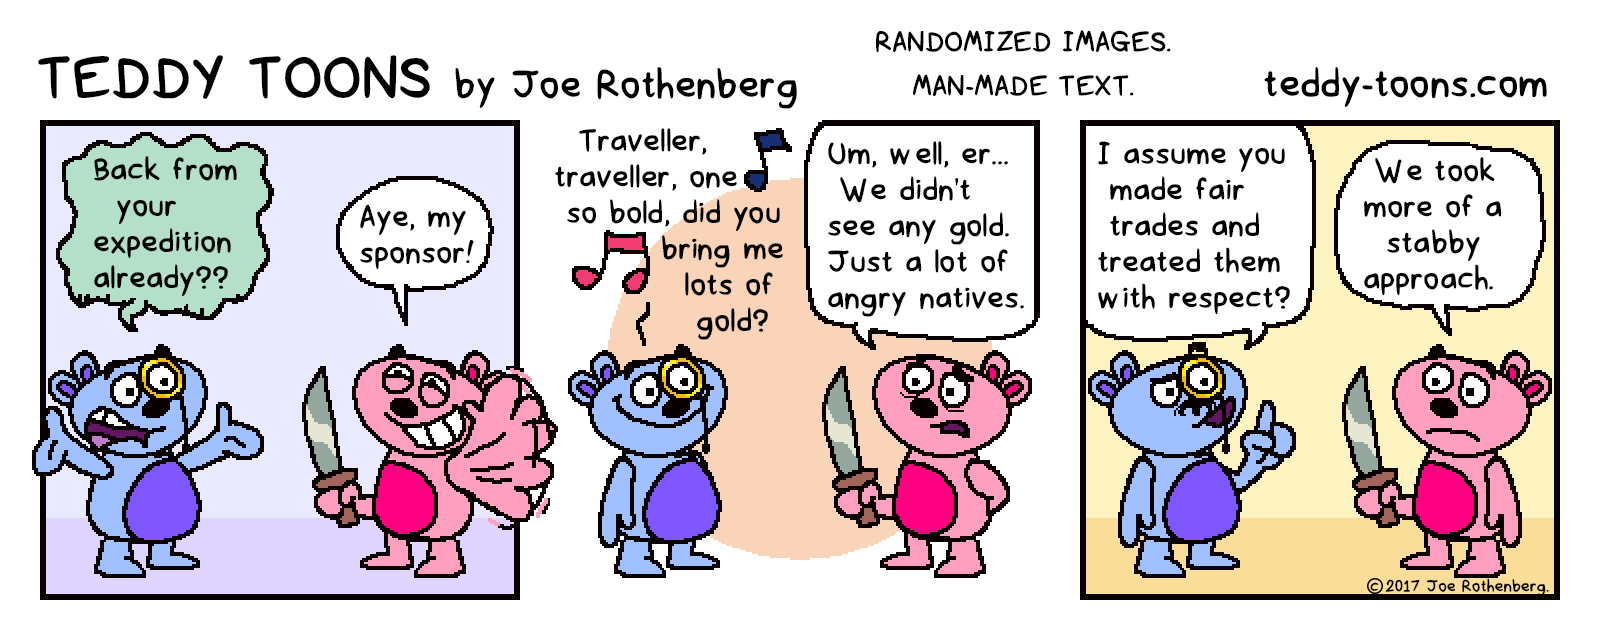 Teddy-Toons-01.png